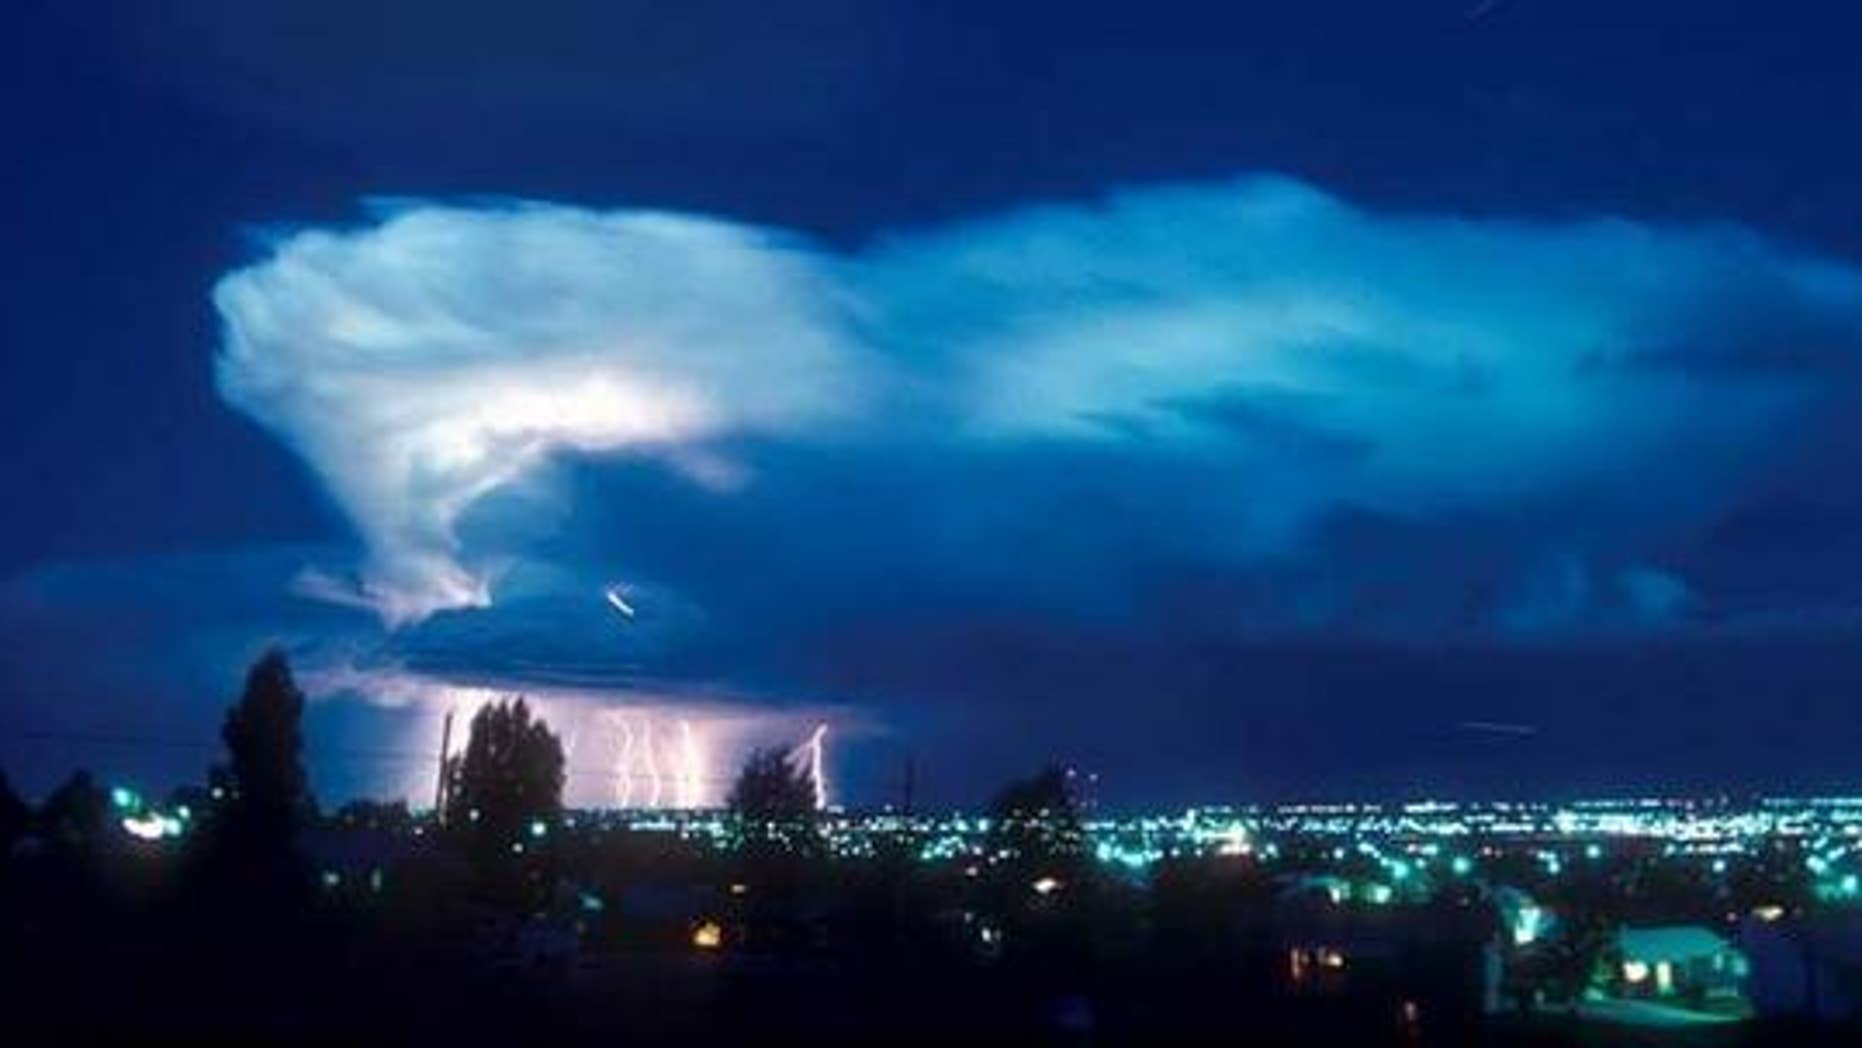 Bacteria living in storm clouds could seed the ice crystals that form rain, new research suggests